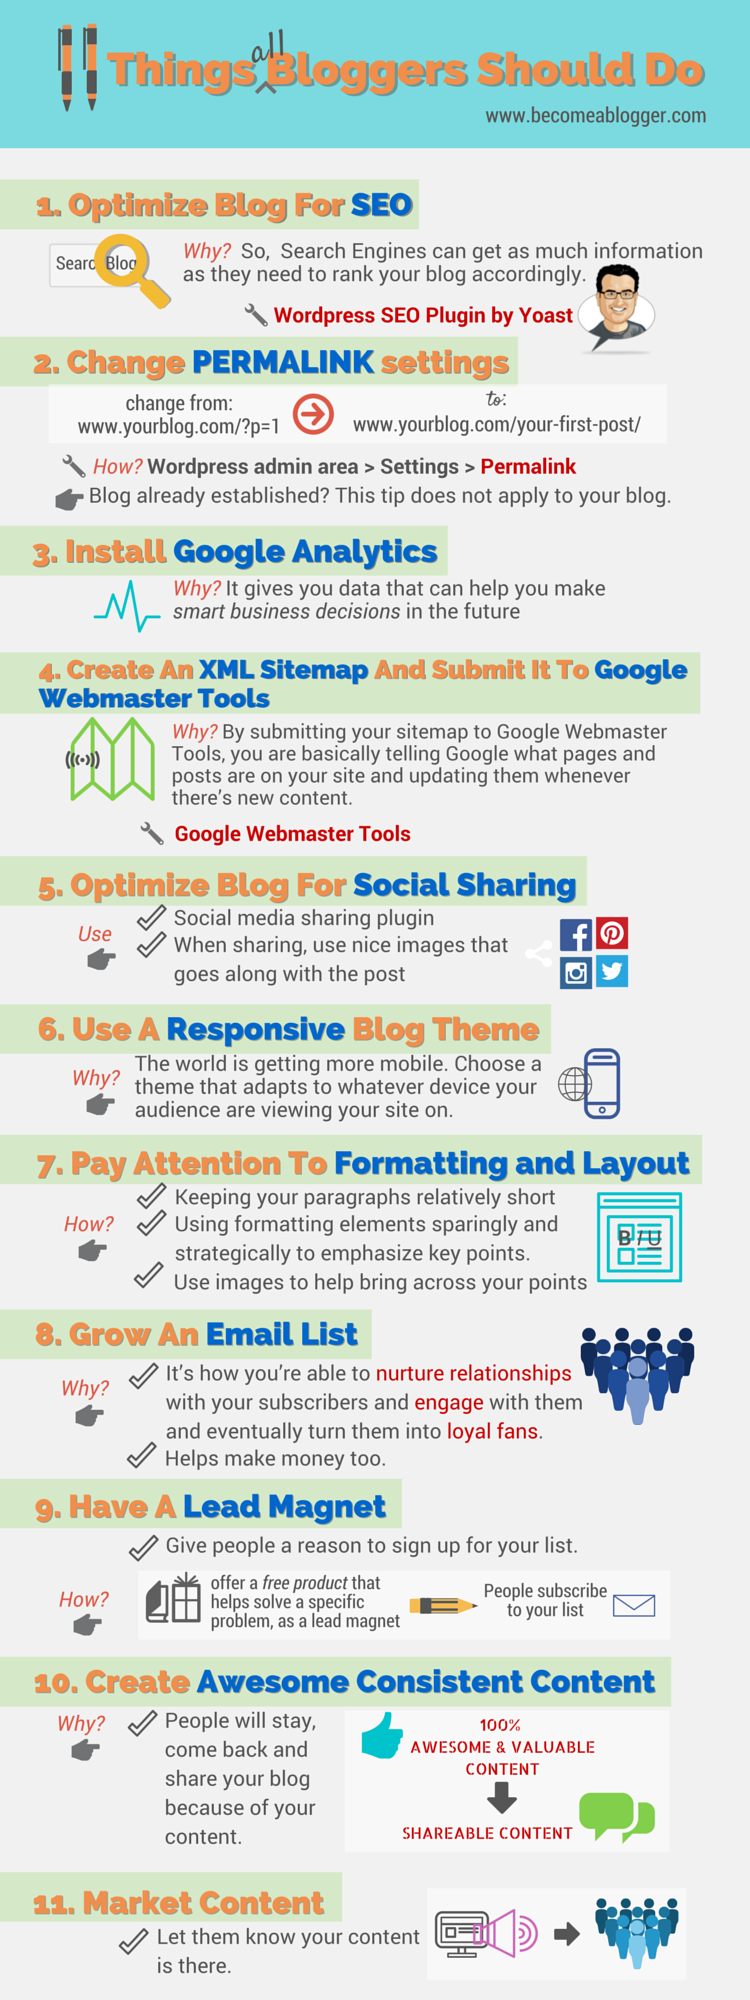 210_BLoggers_Should_Do_Infographic-(1)